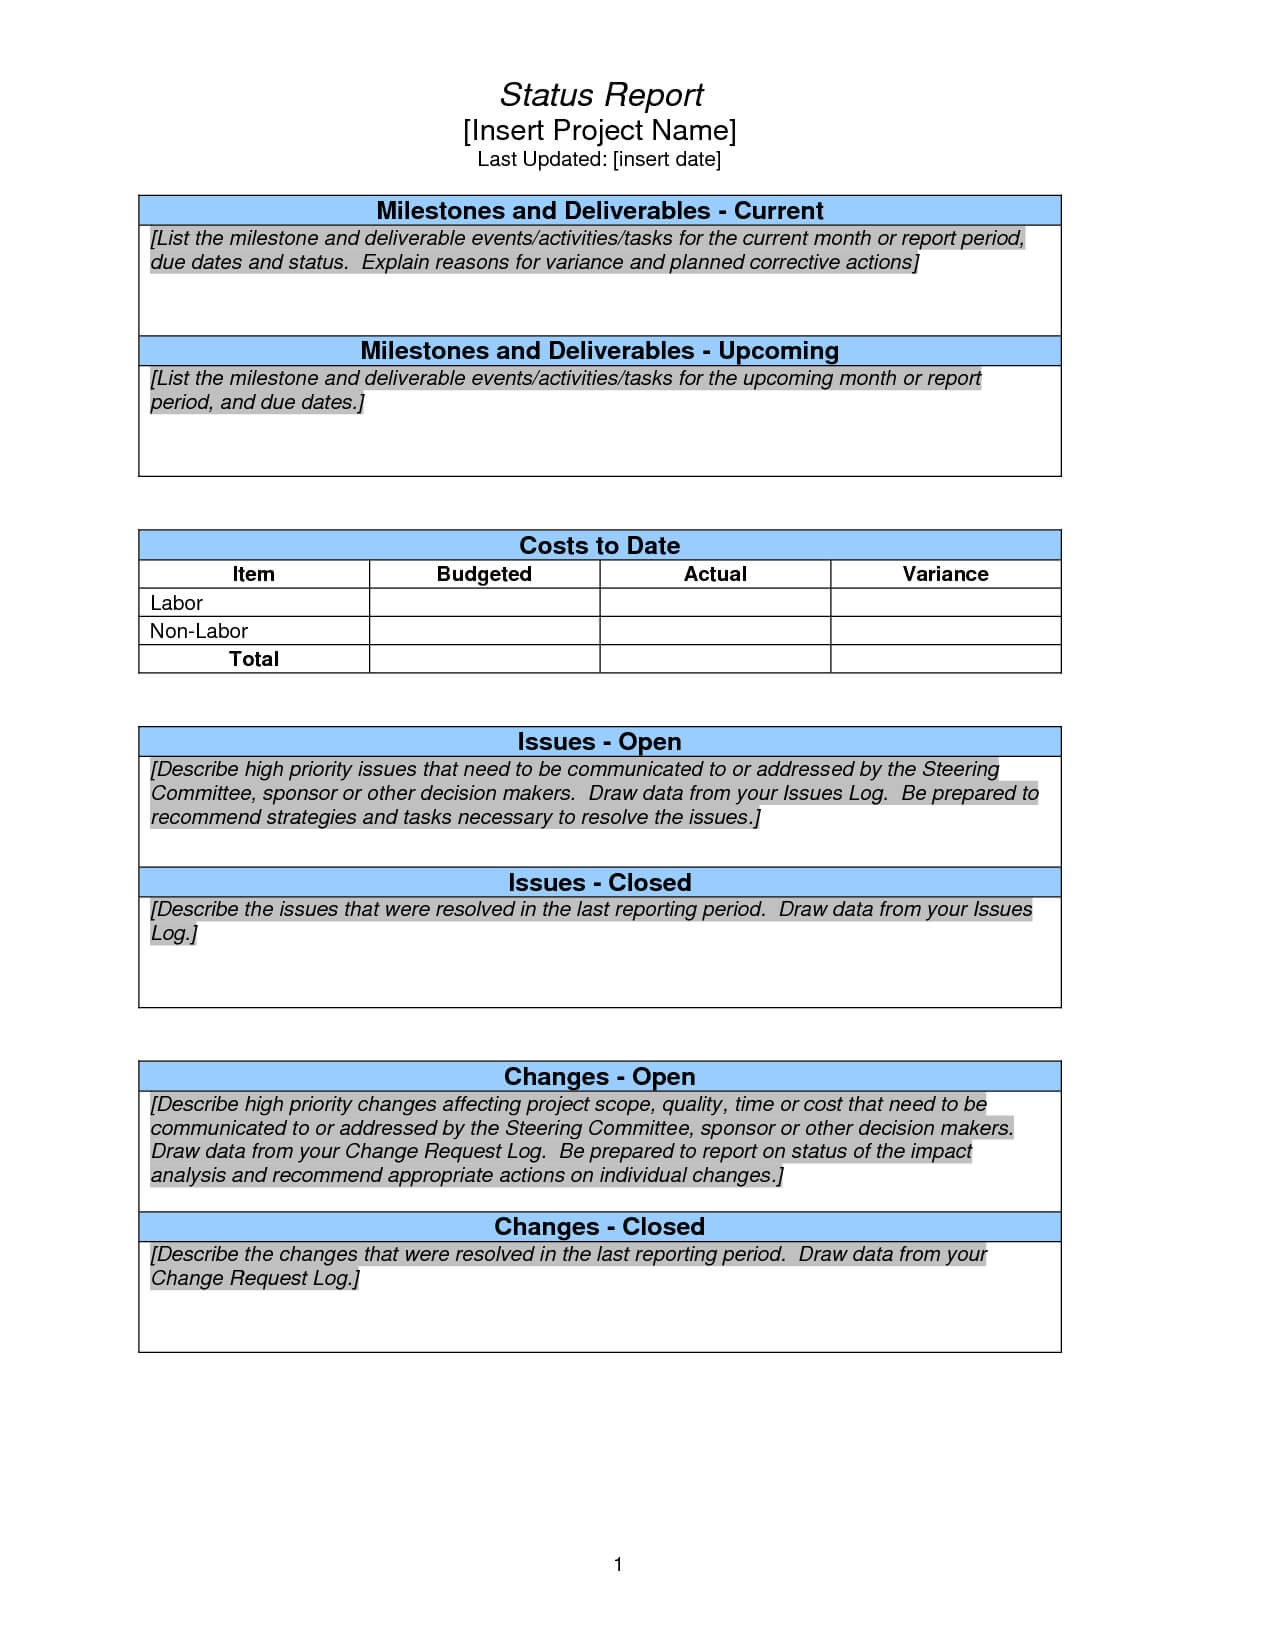 Project Status Report Template Weekly Sample Google Search Pertaining To Project Status Report Template Excel Download Filetype Xls